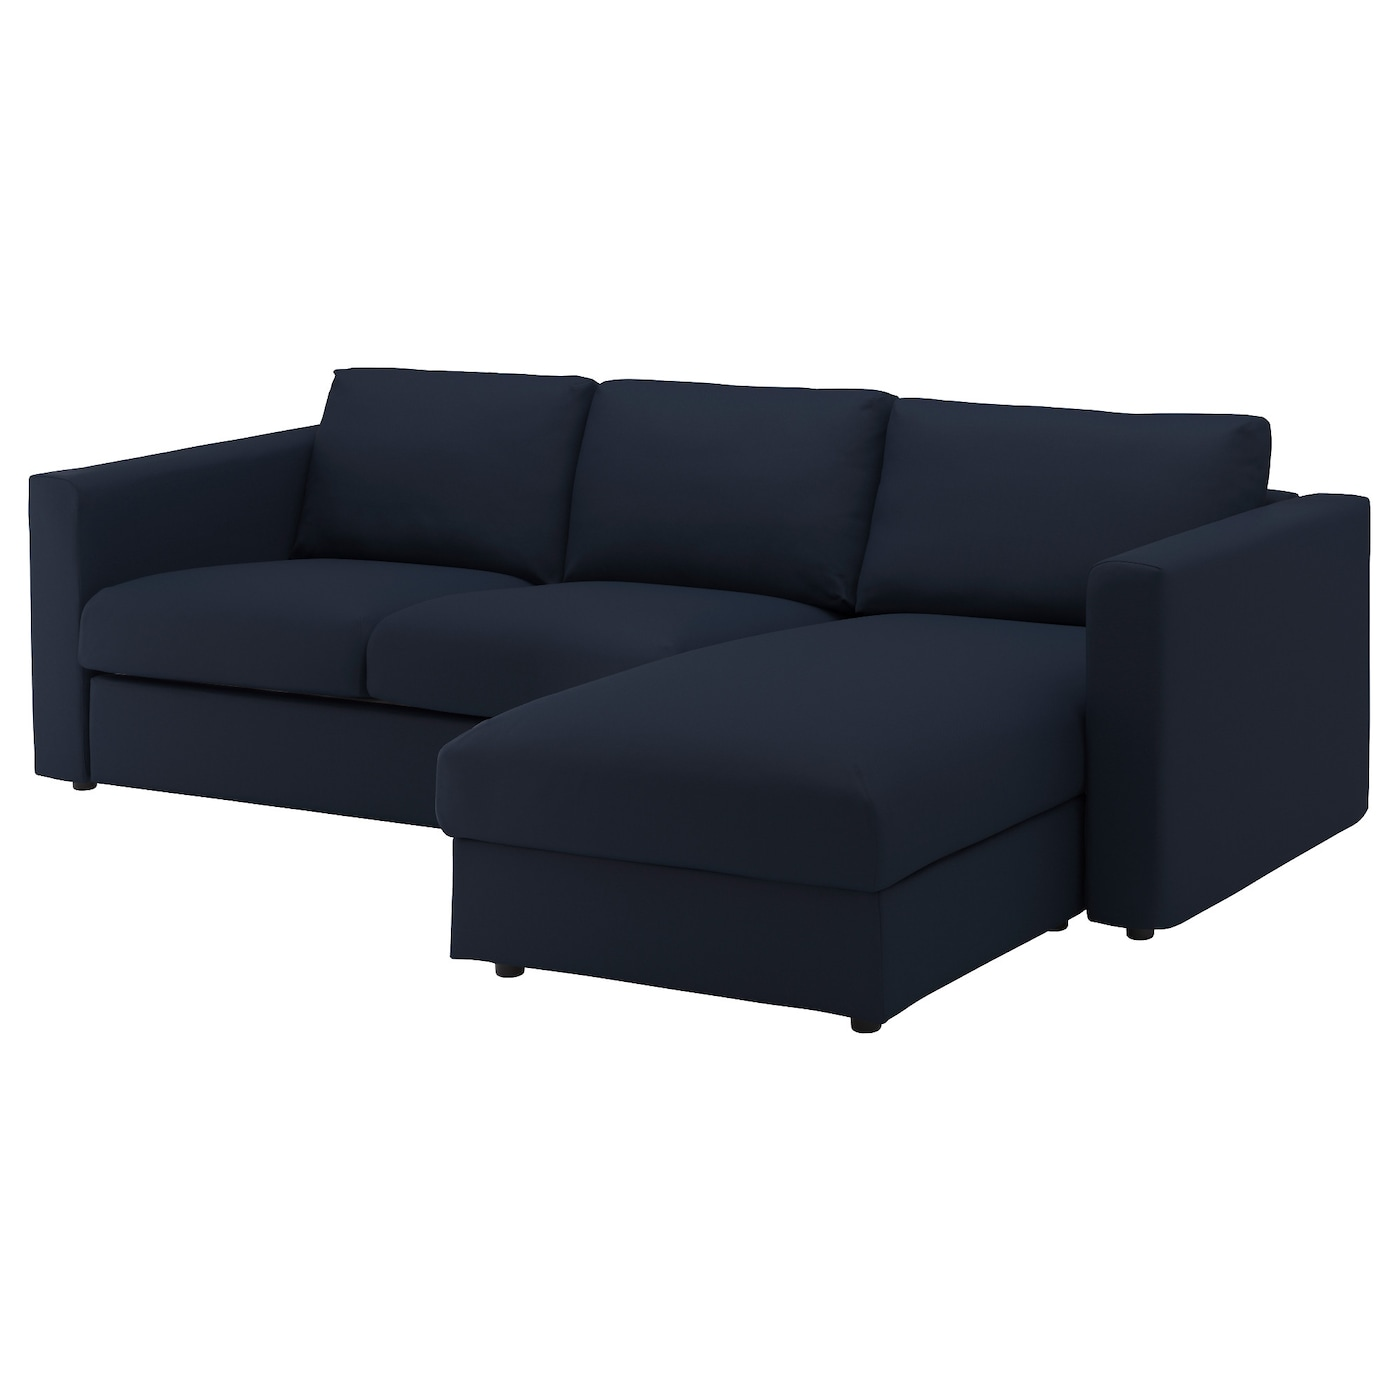 Vimle 3 seat sofa with chaise longue gr sbo black blue ikea for 3 seat sofa with chaise